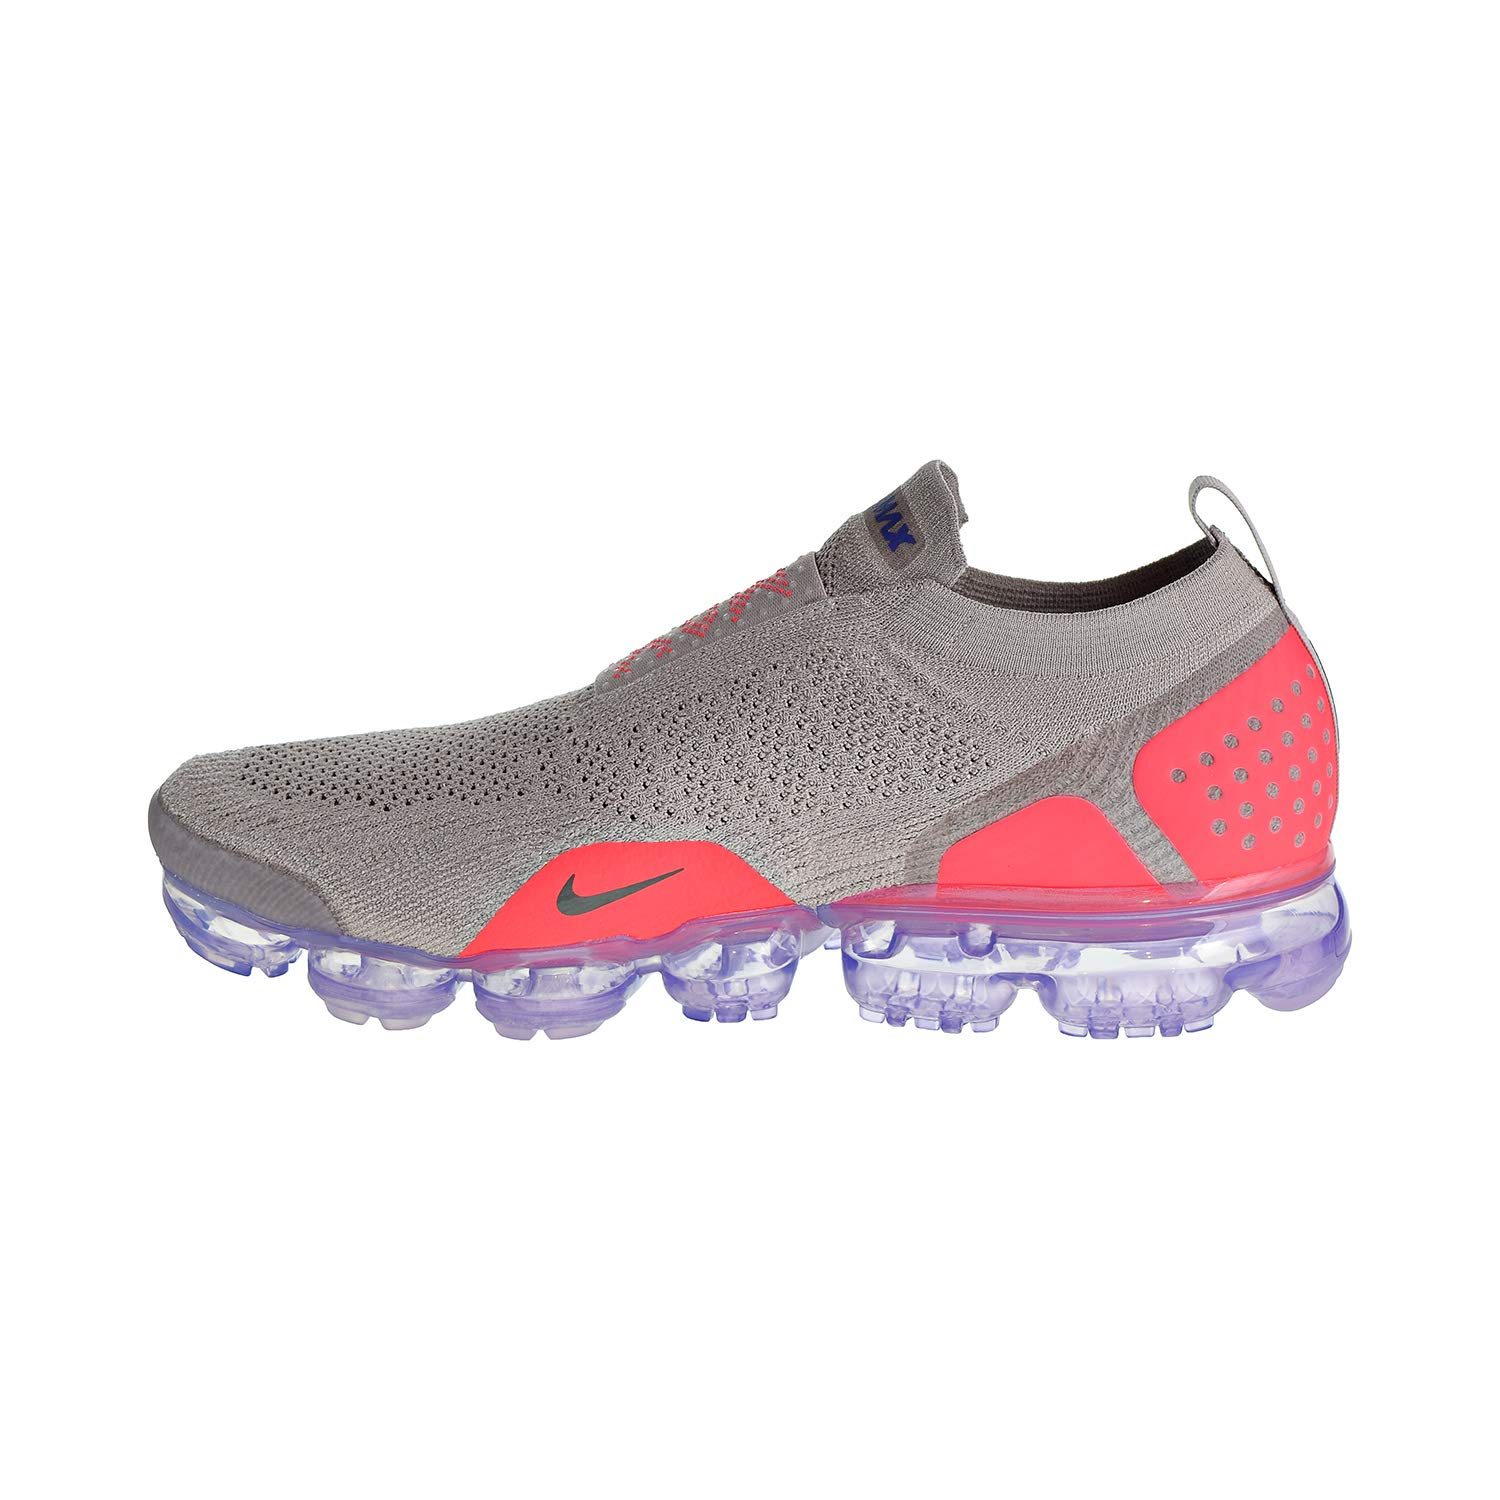 factory price 9be1b f44d5 Nike Unisex Adults Air Vapormax Fk Moc 2 Running Shoes  Amazon.co.uk  Shoes    Bags